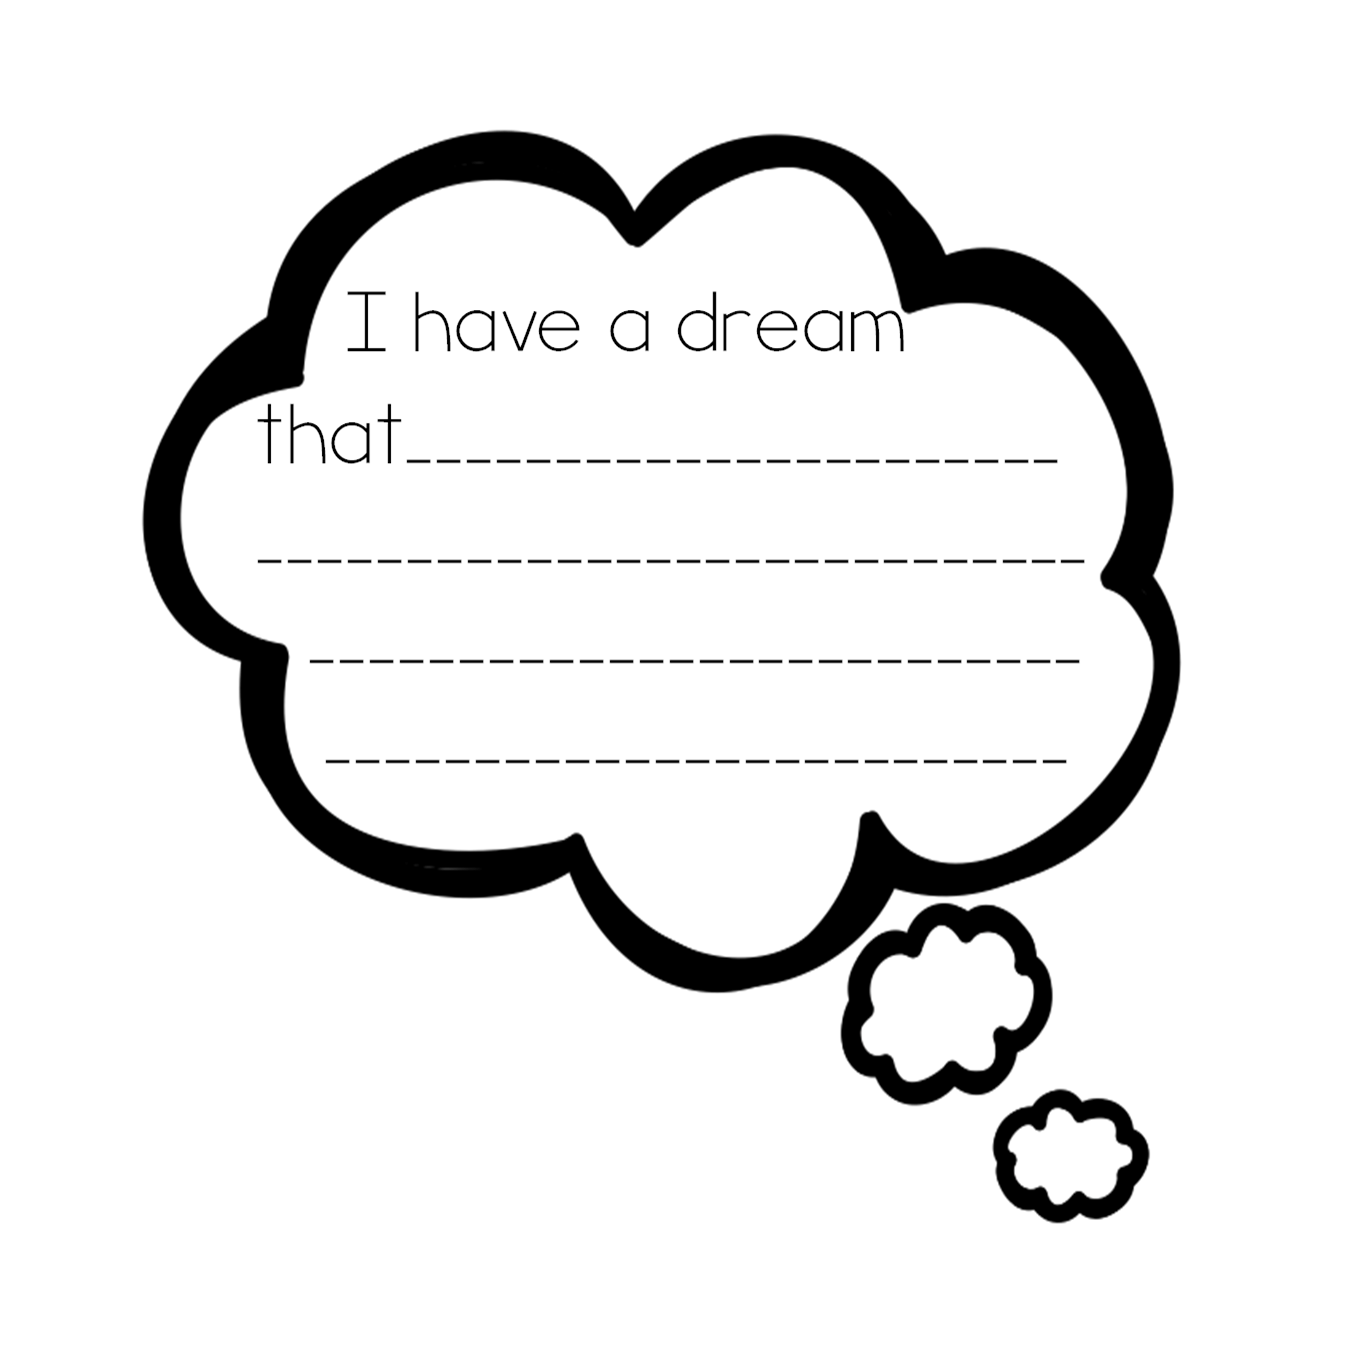 Dream Bubble Clip Art This Thinking Bubble And Images